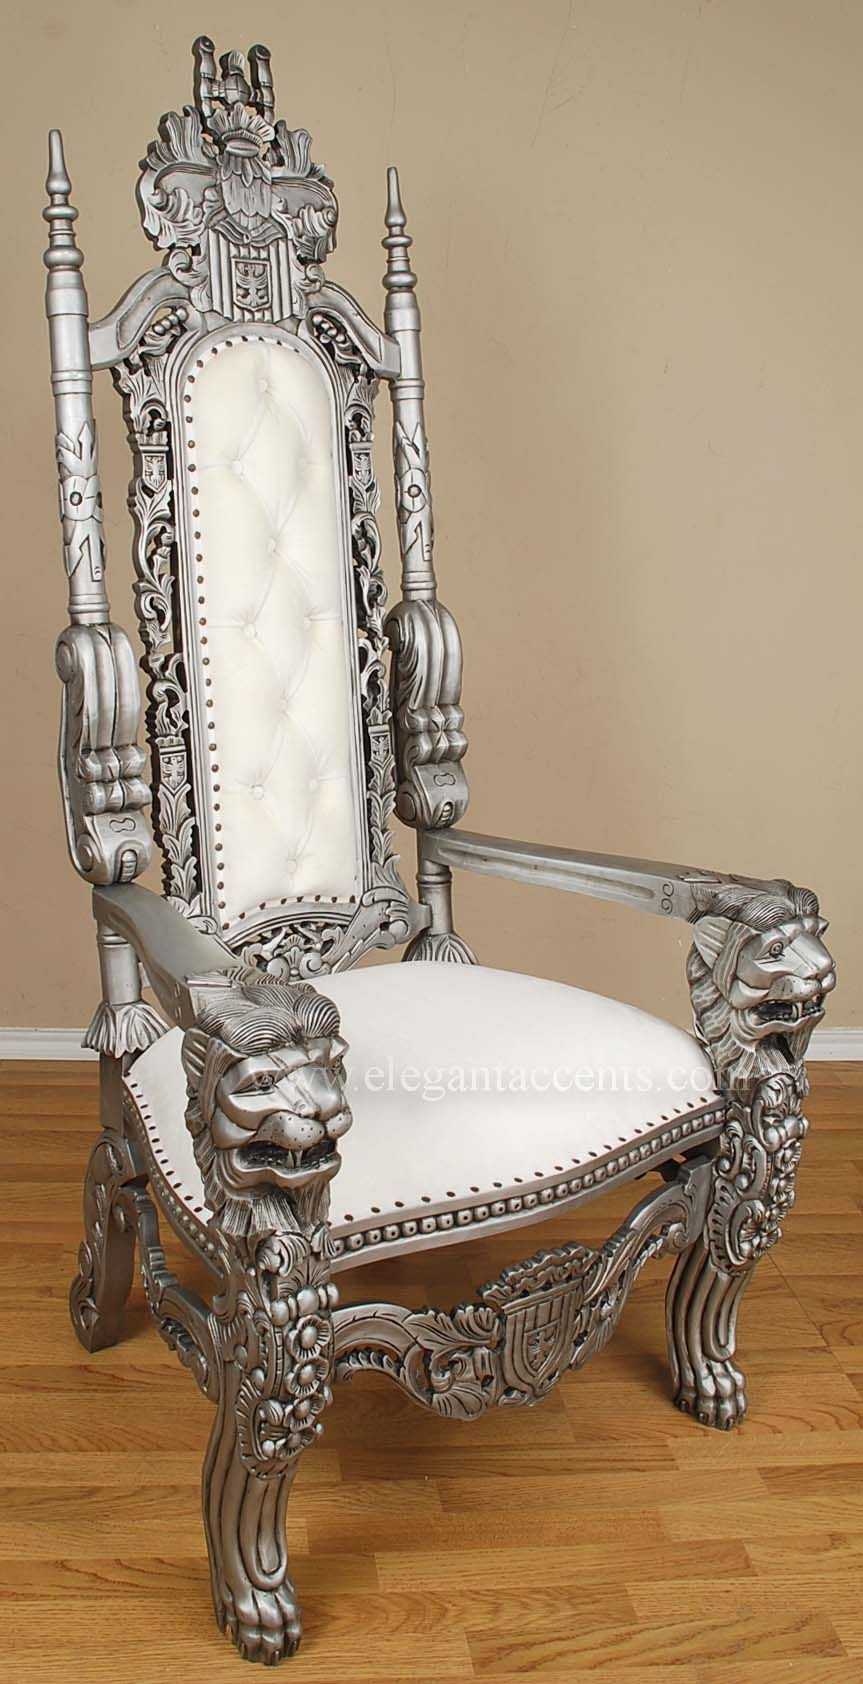 Your Seat At The Dining Room Table (it Will Be A Cool Mix With The Barn  Style Table) King Lion Throne Chair   Silver U0026 White863 X 1684 | 158.7KB ...